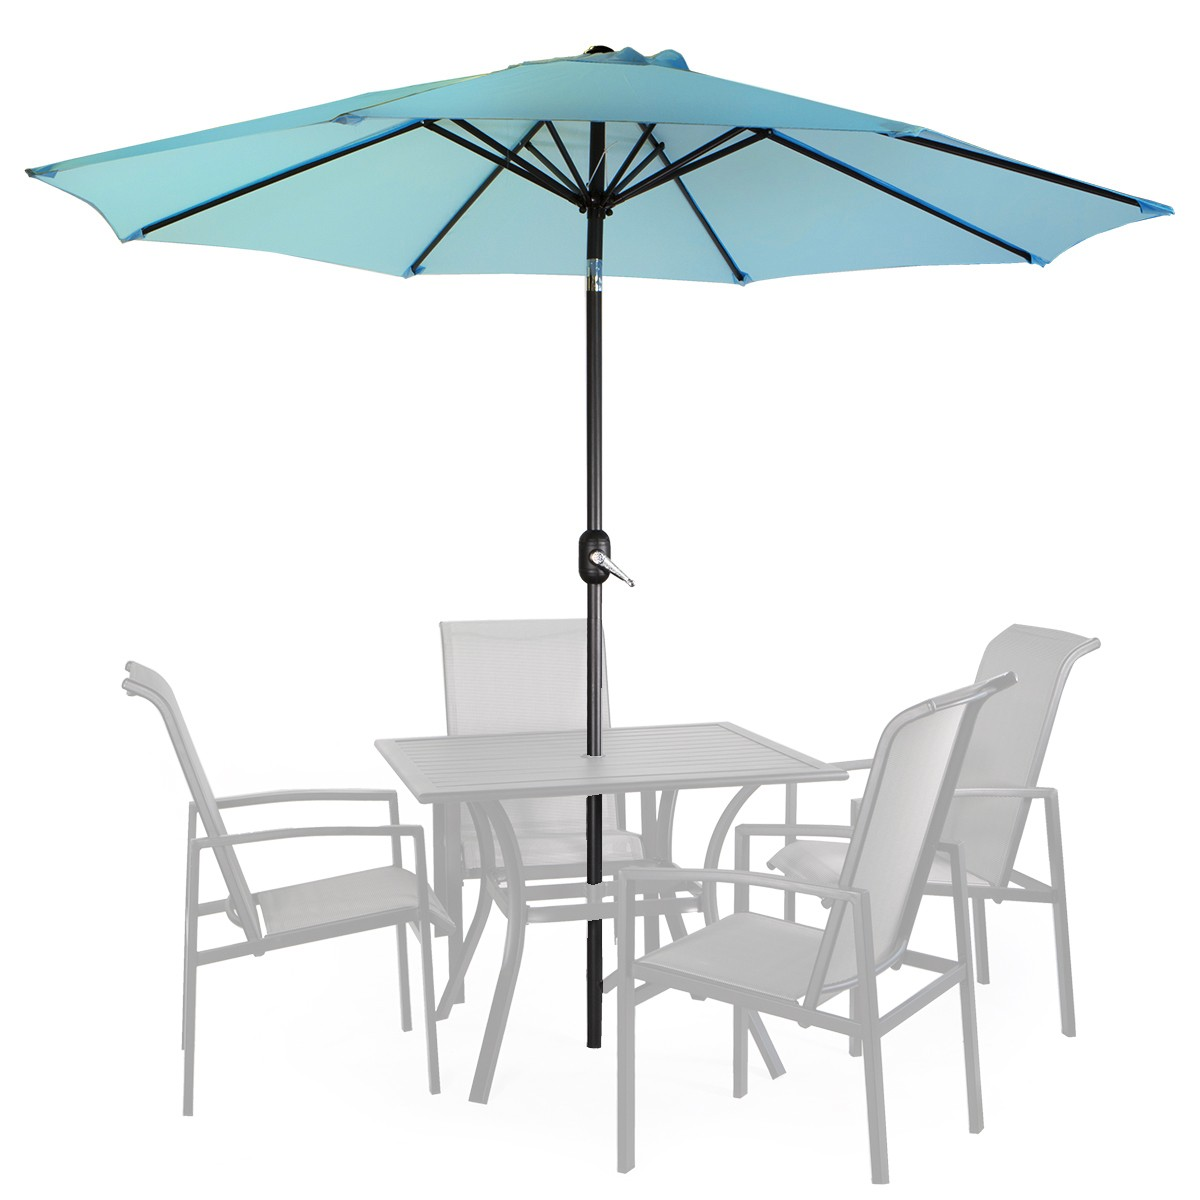 9' Patio Umbrella Round Sunshade Outdoor Canopy Tilt and Crank Blue by